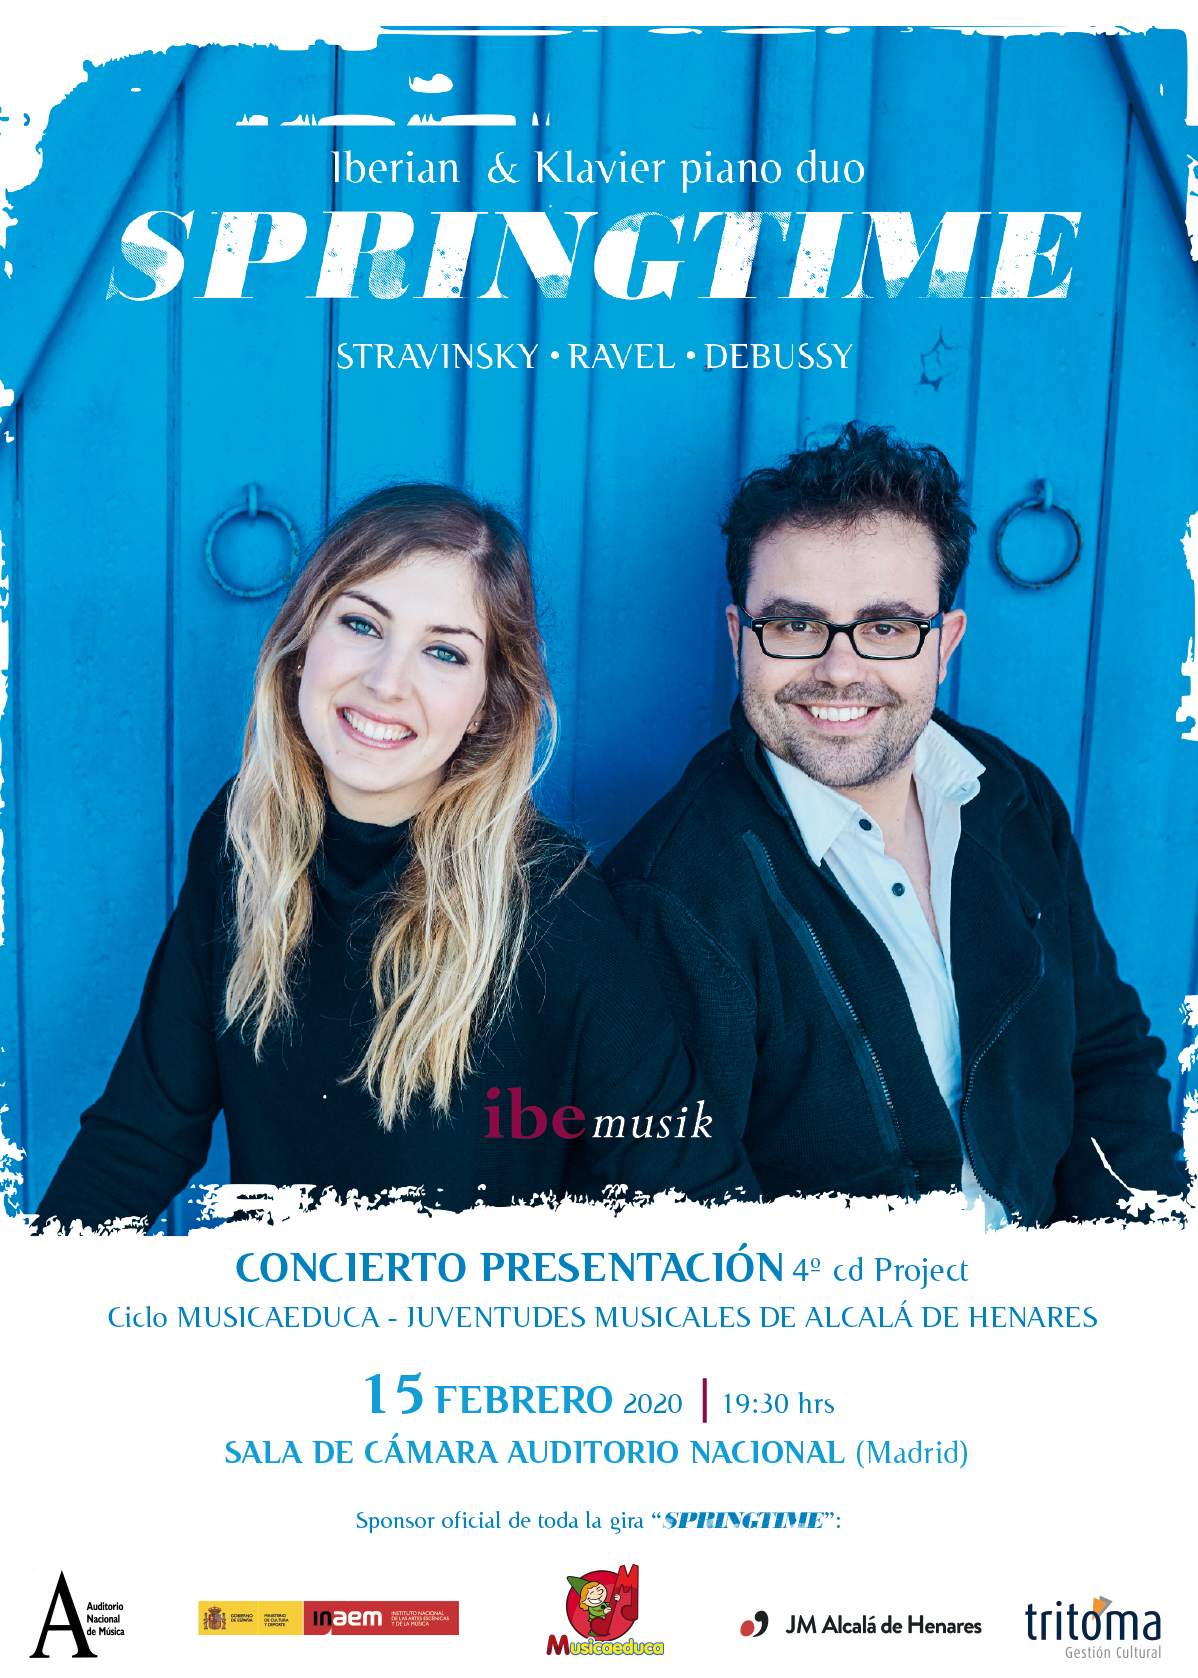 carteles springtime iberian and klavier